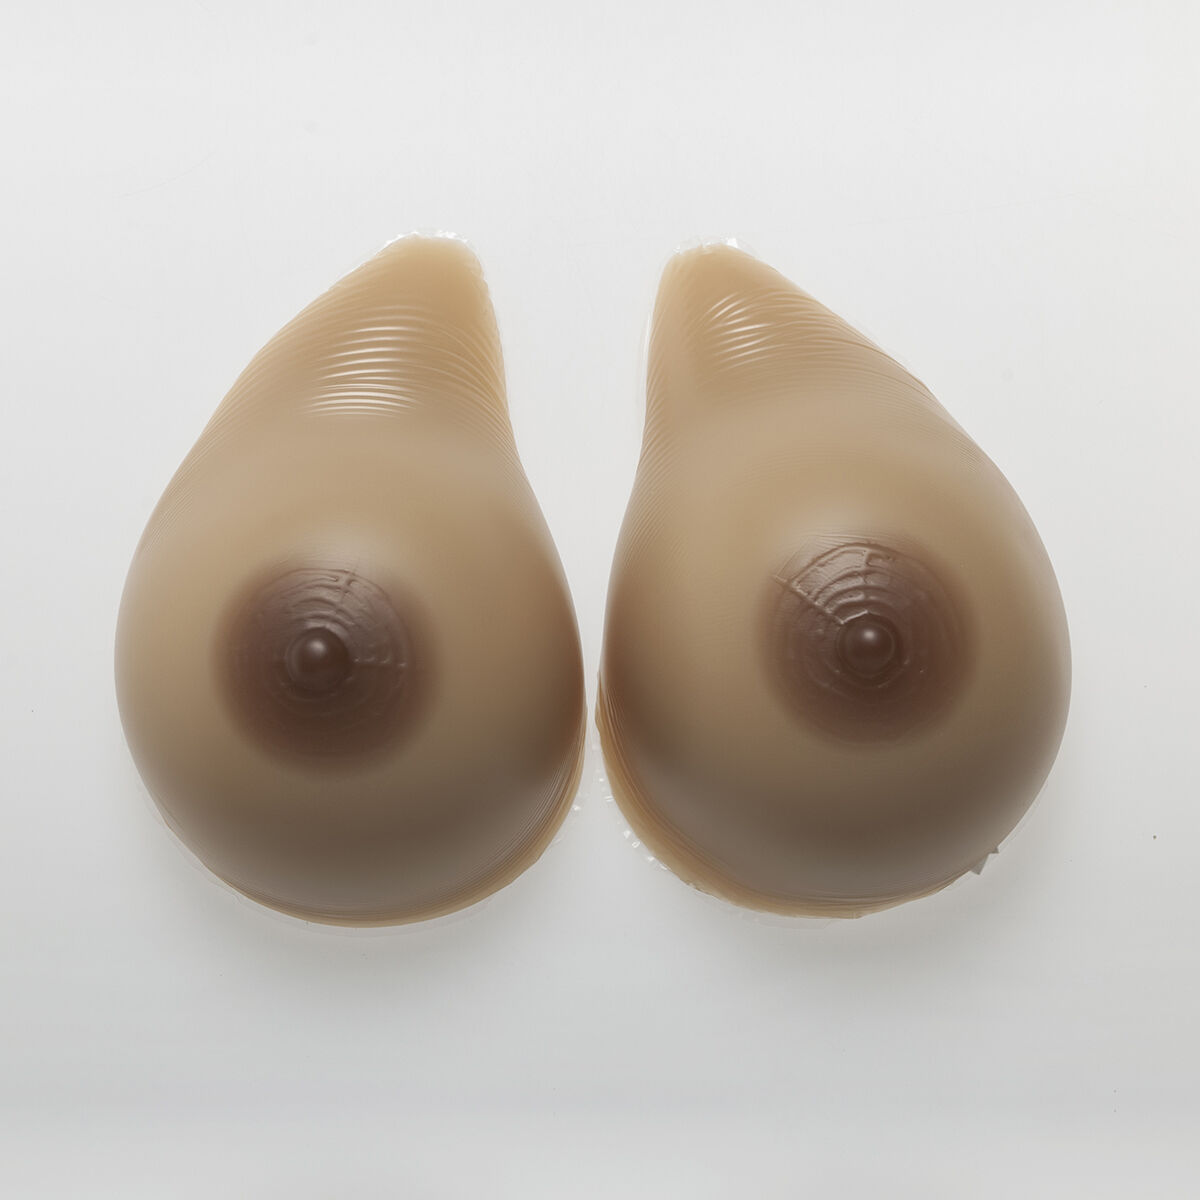 1200g pair Artificial Breast Forms Silicone Boobs Crossdresser DD Cup gift how